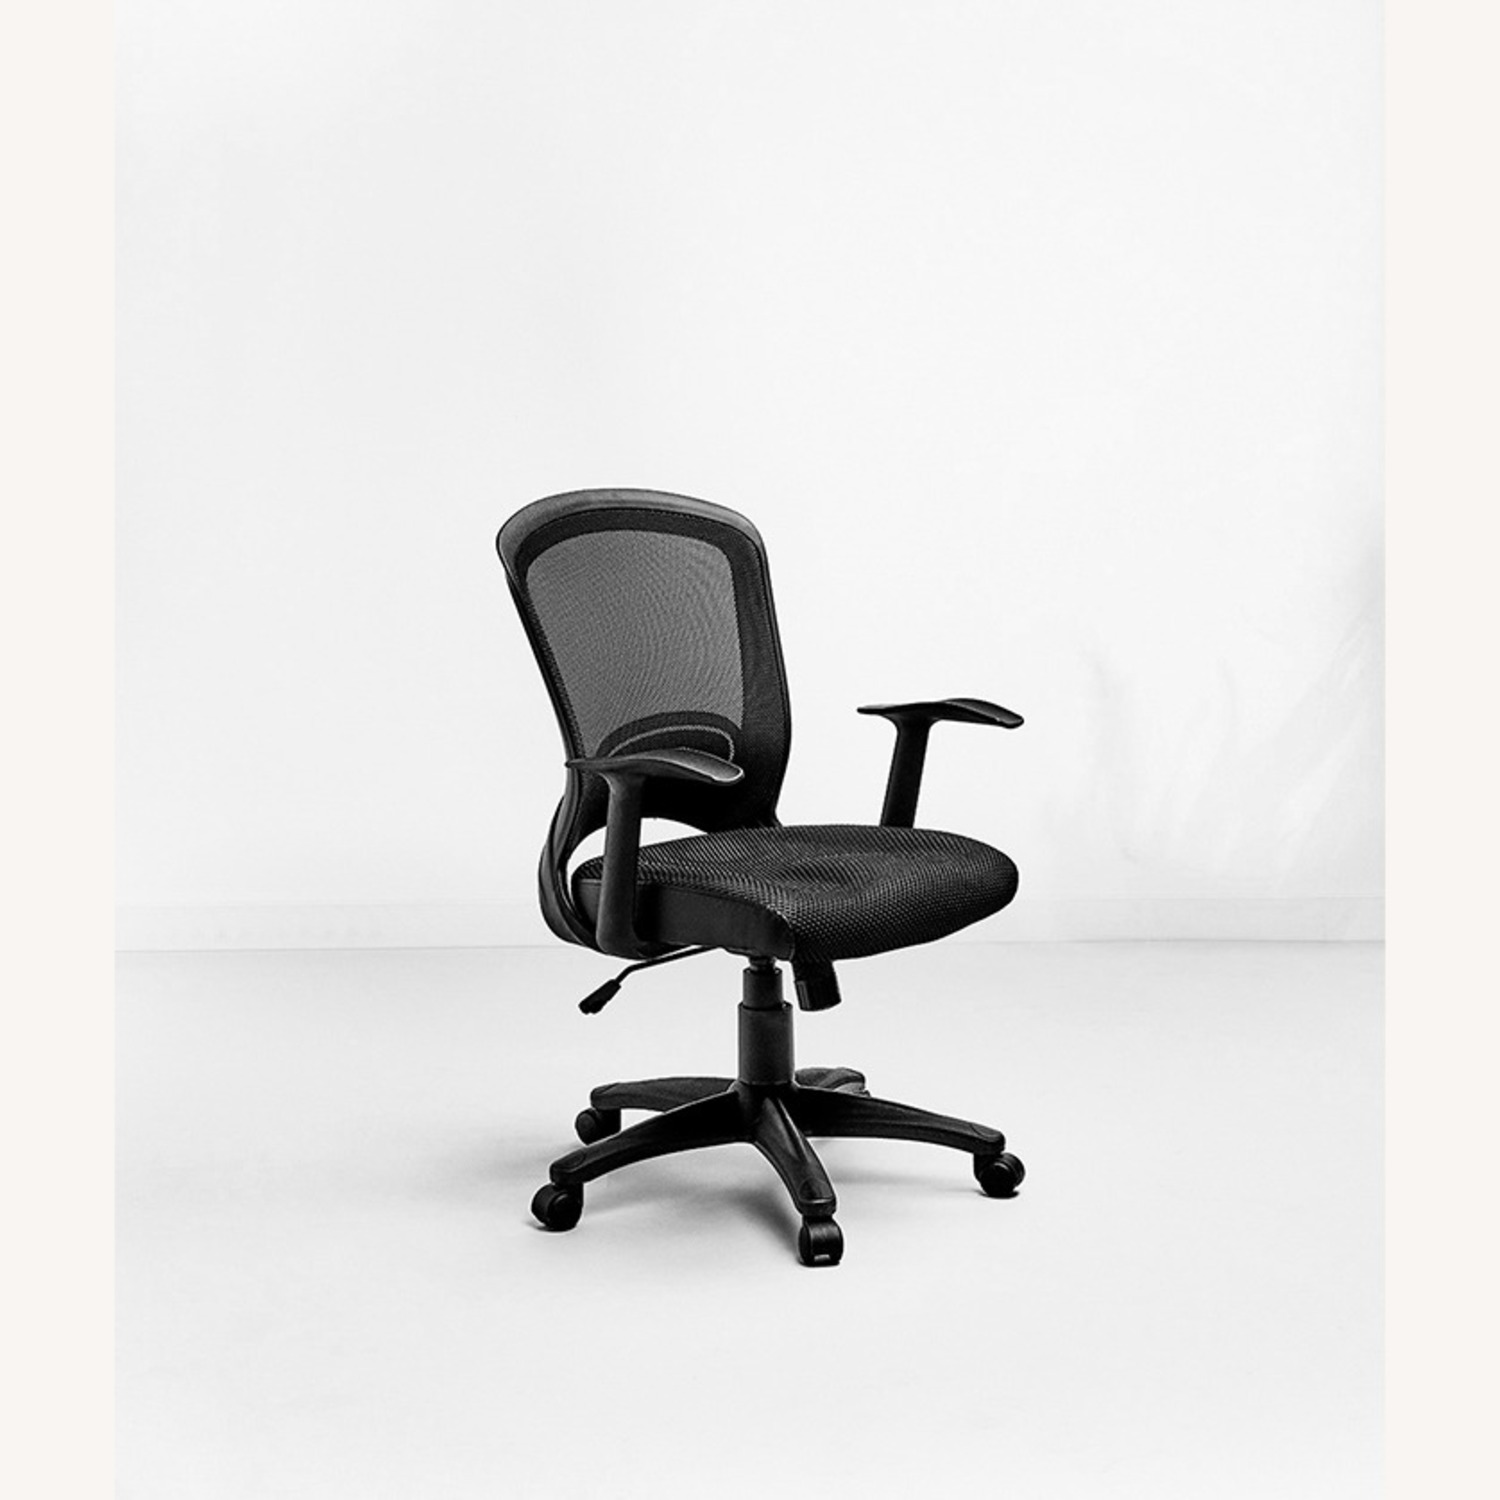 Modway Whistler Desk Chair - image-3